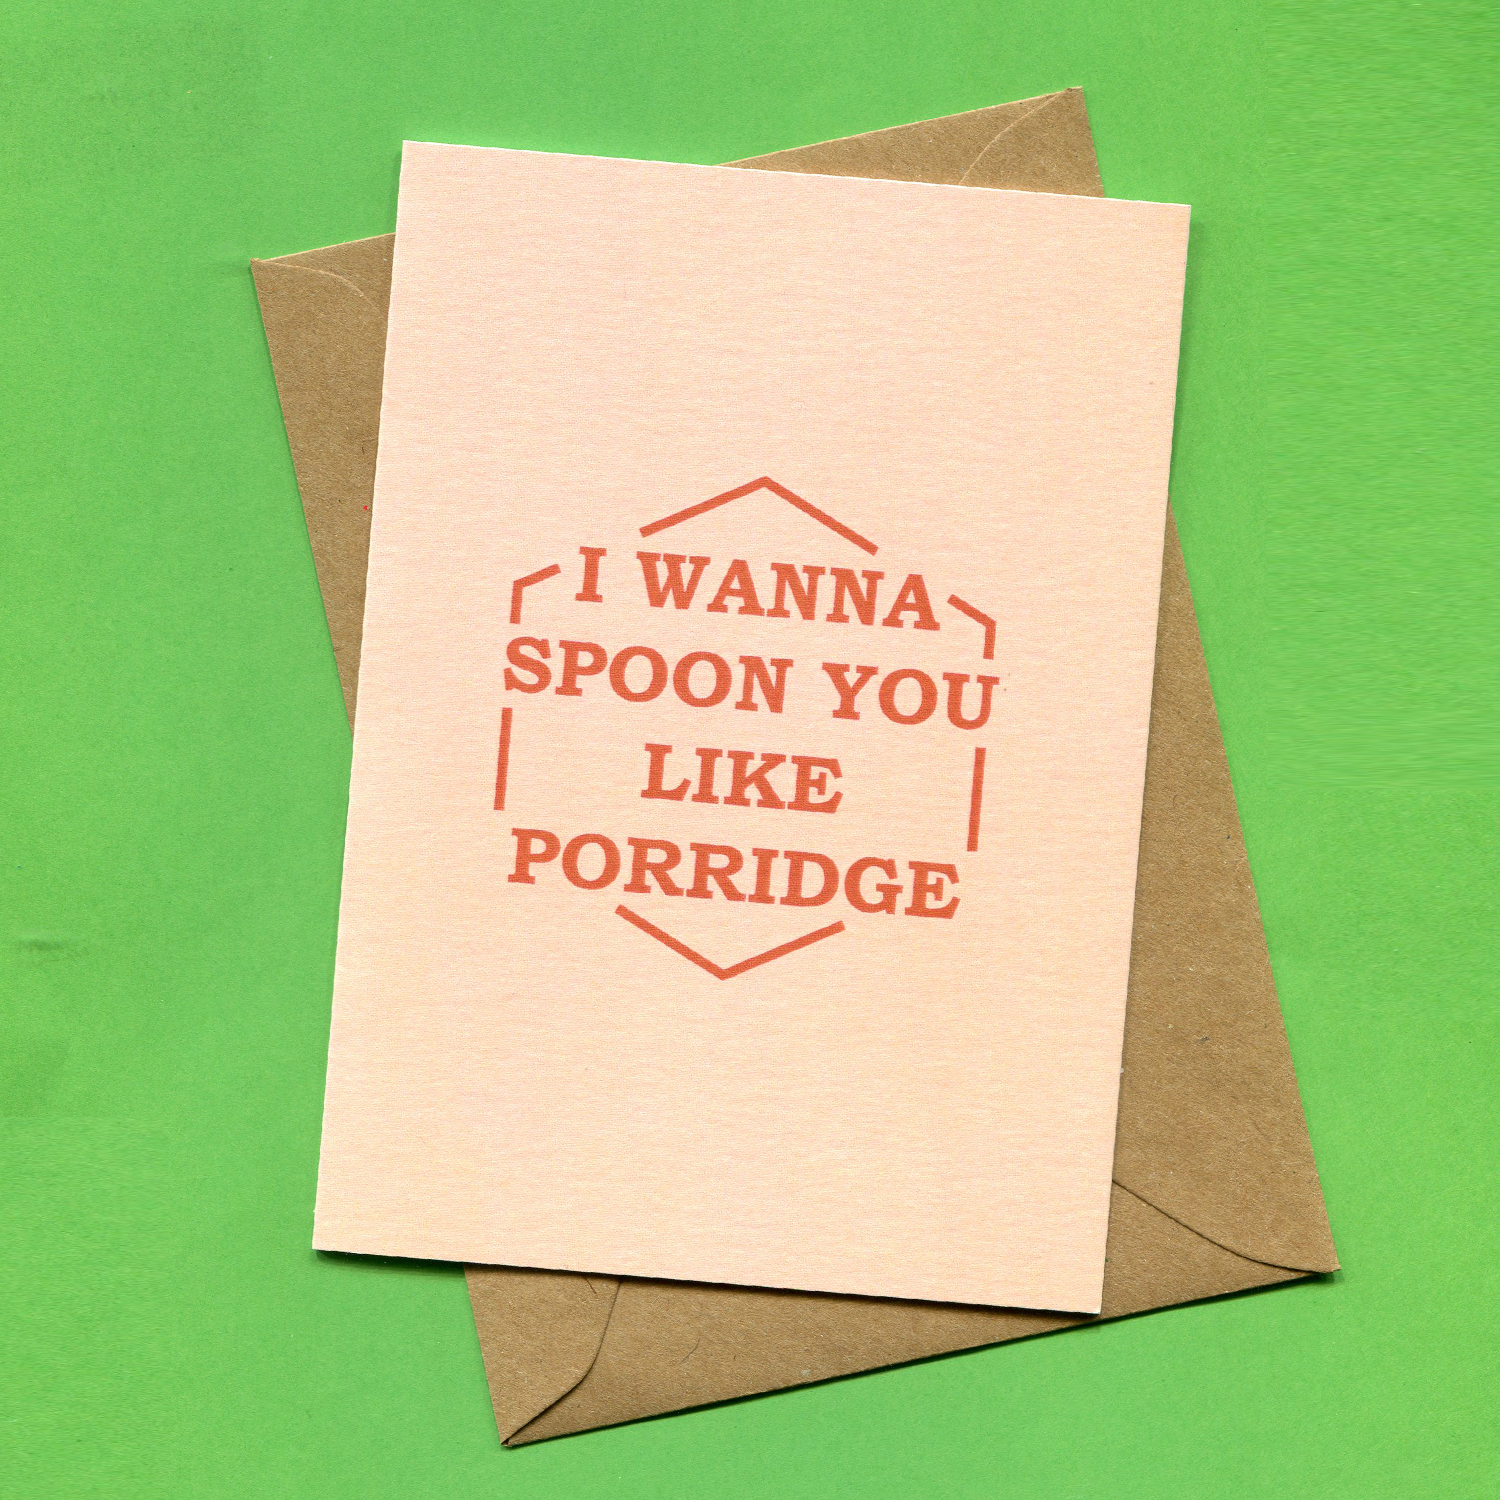 Catalogue_Things by Bean I Wanna Spoon You Like Porridge Greeting Card New.jpg